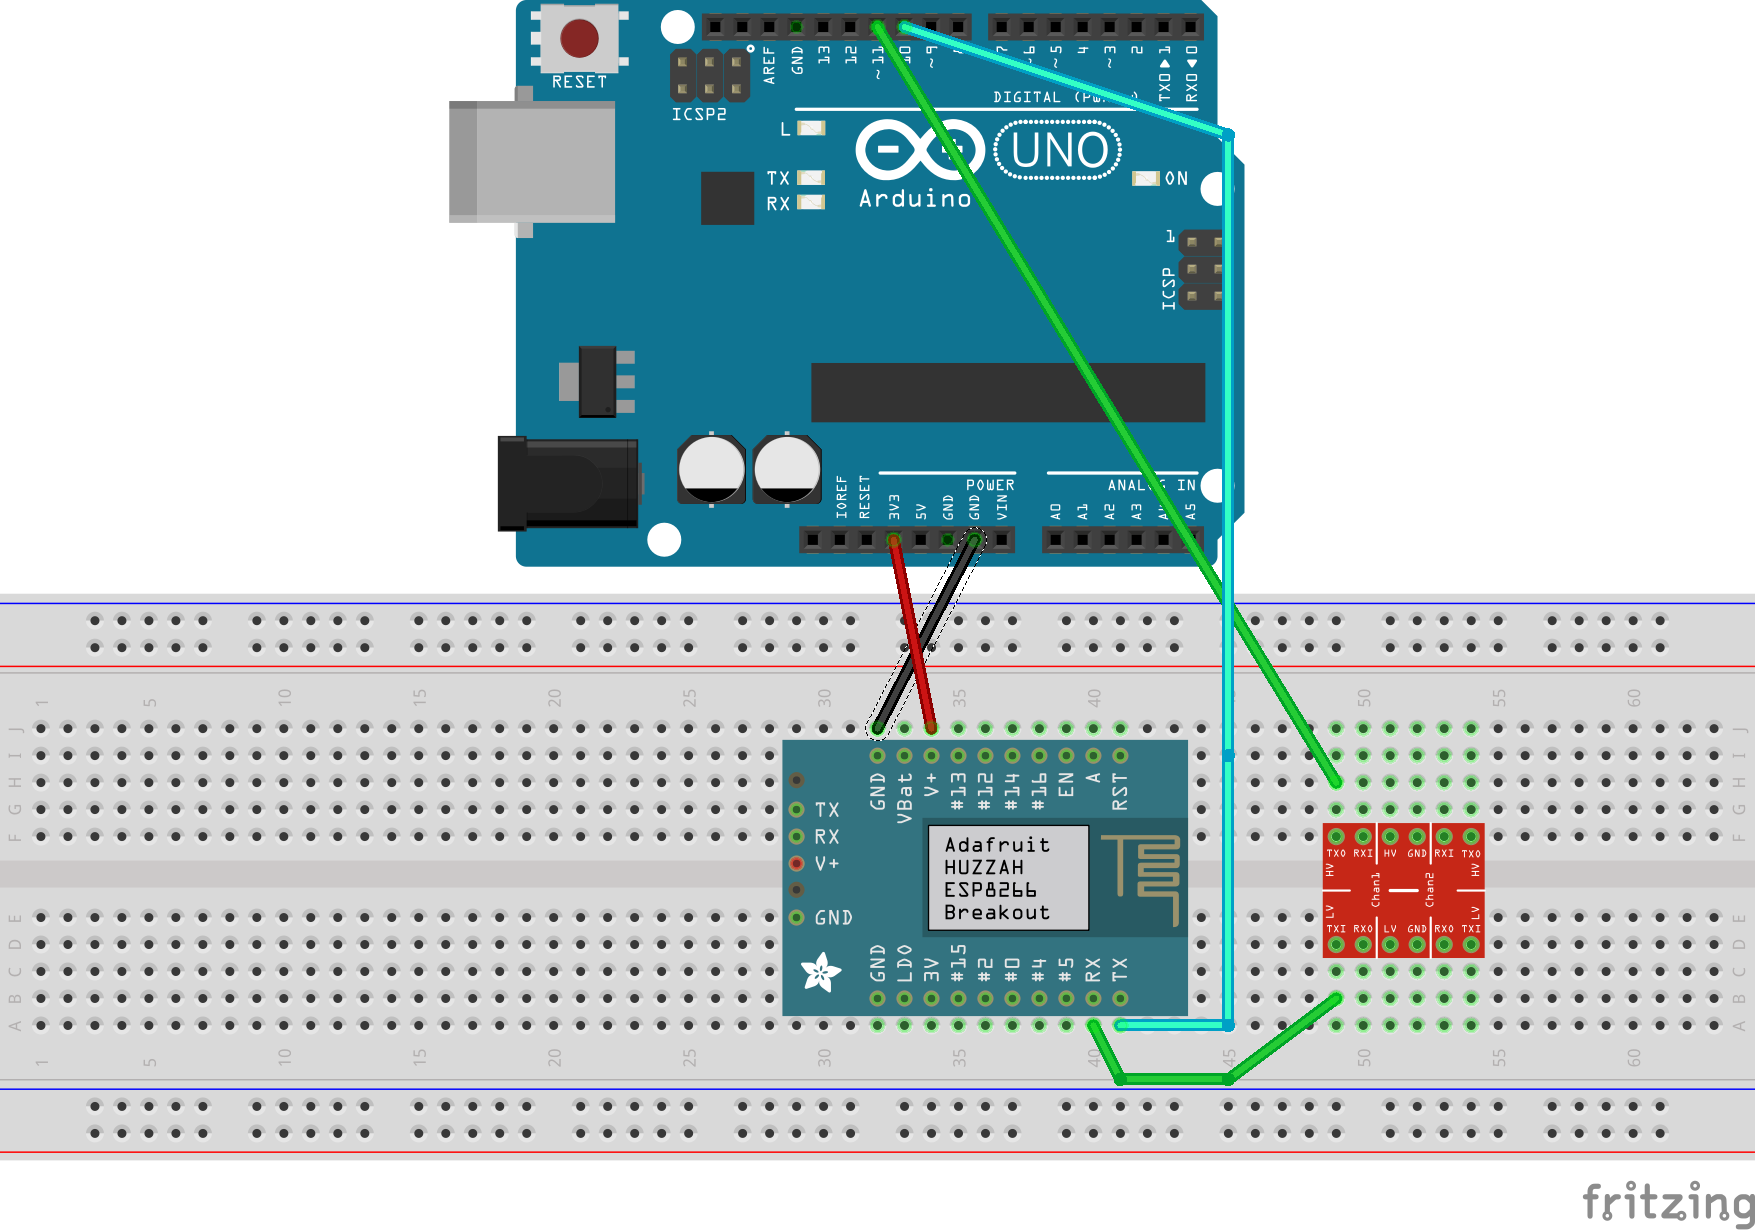 How to setup an Arduino UNO with ESP8266 and publish an